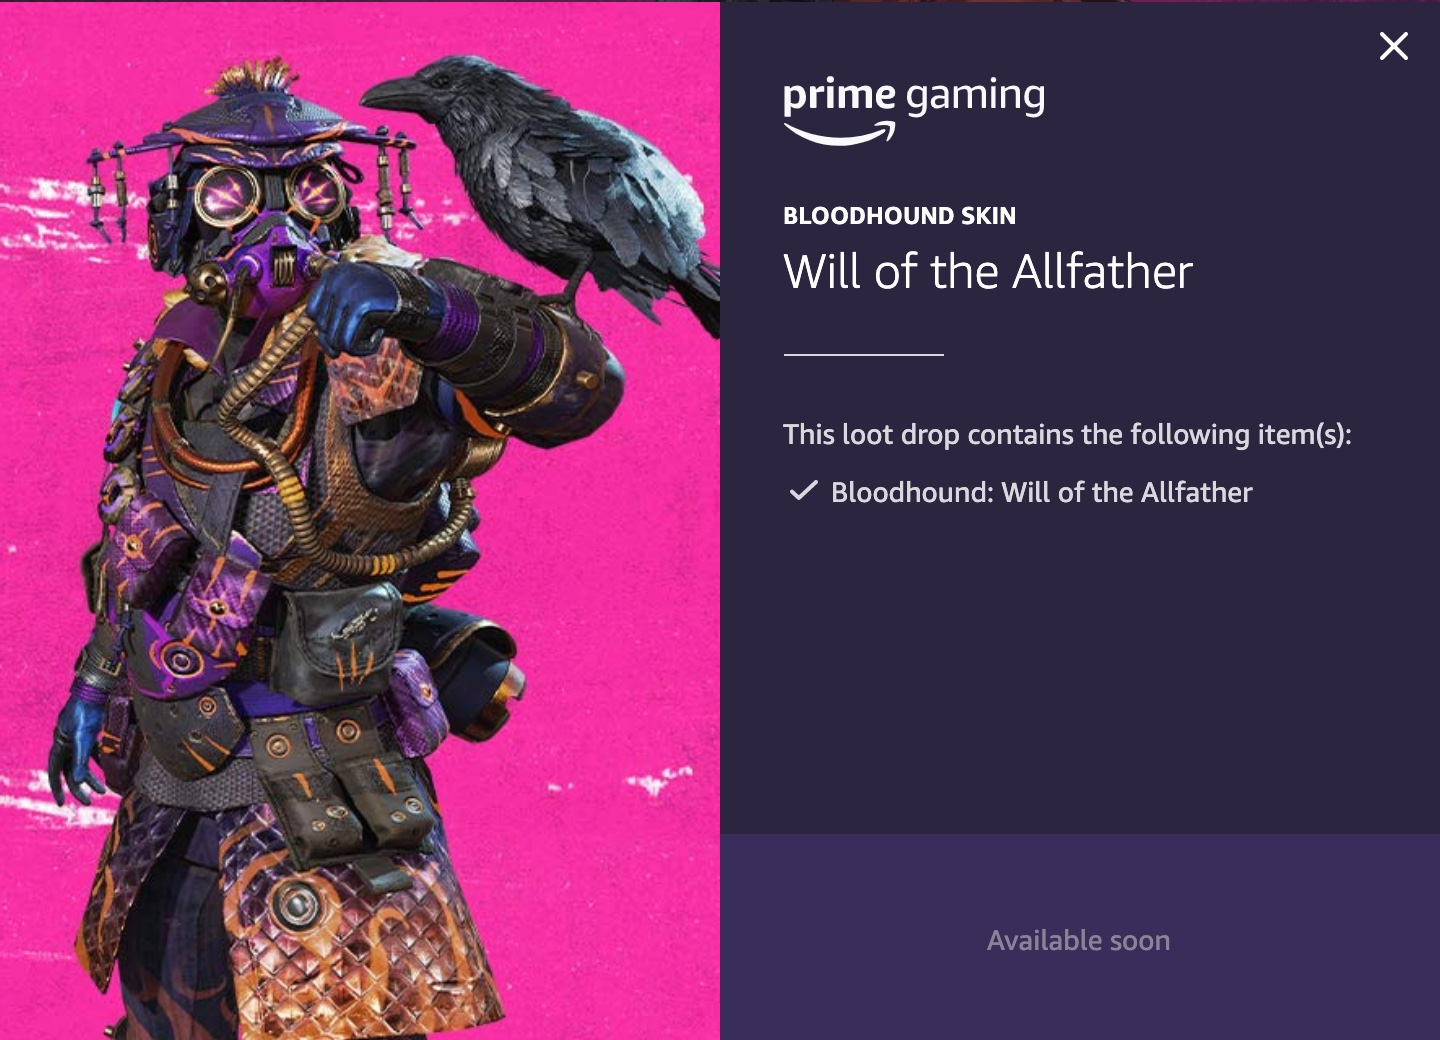 Bloodhound Will of the Allfather Twitch Prime Gaming skin